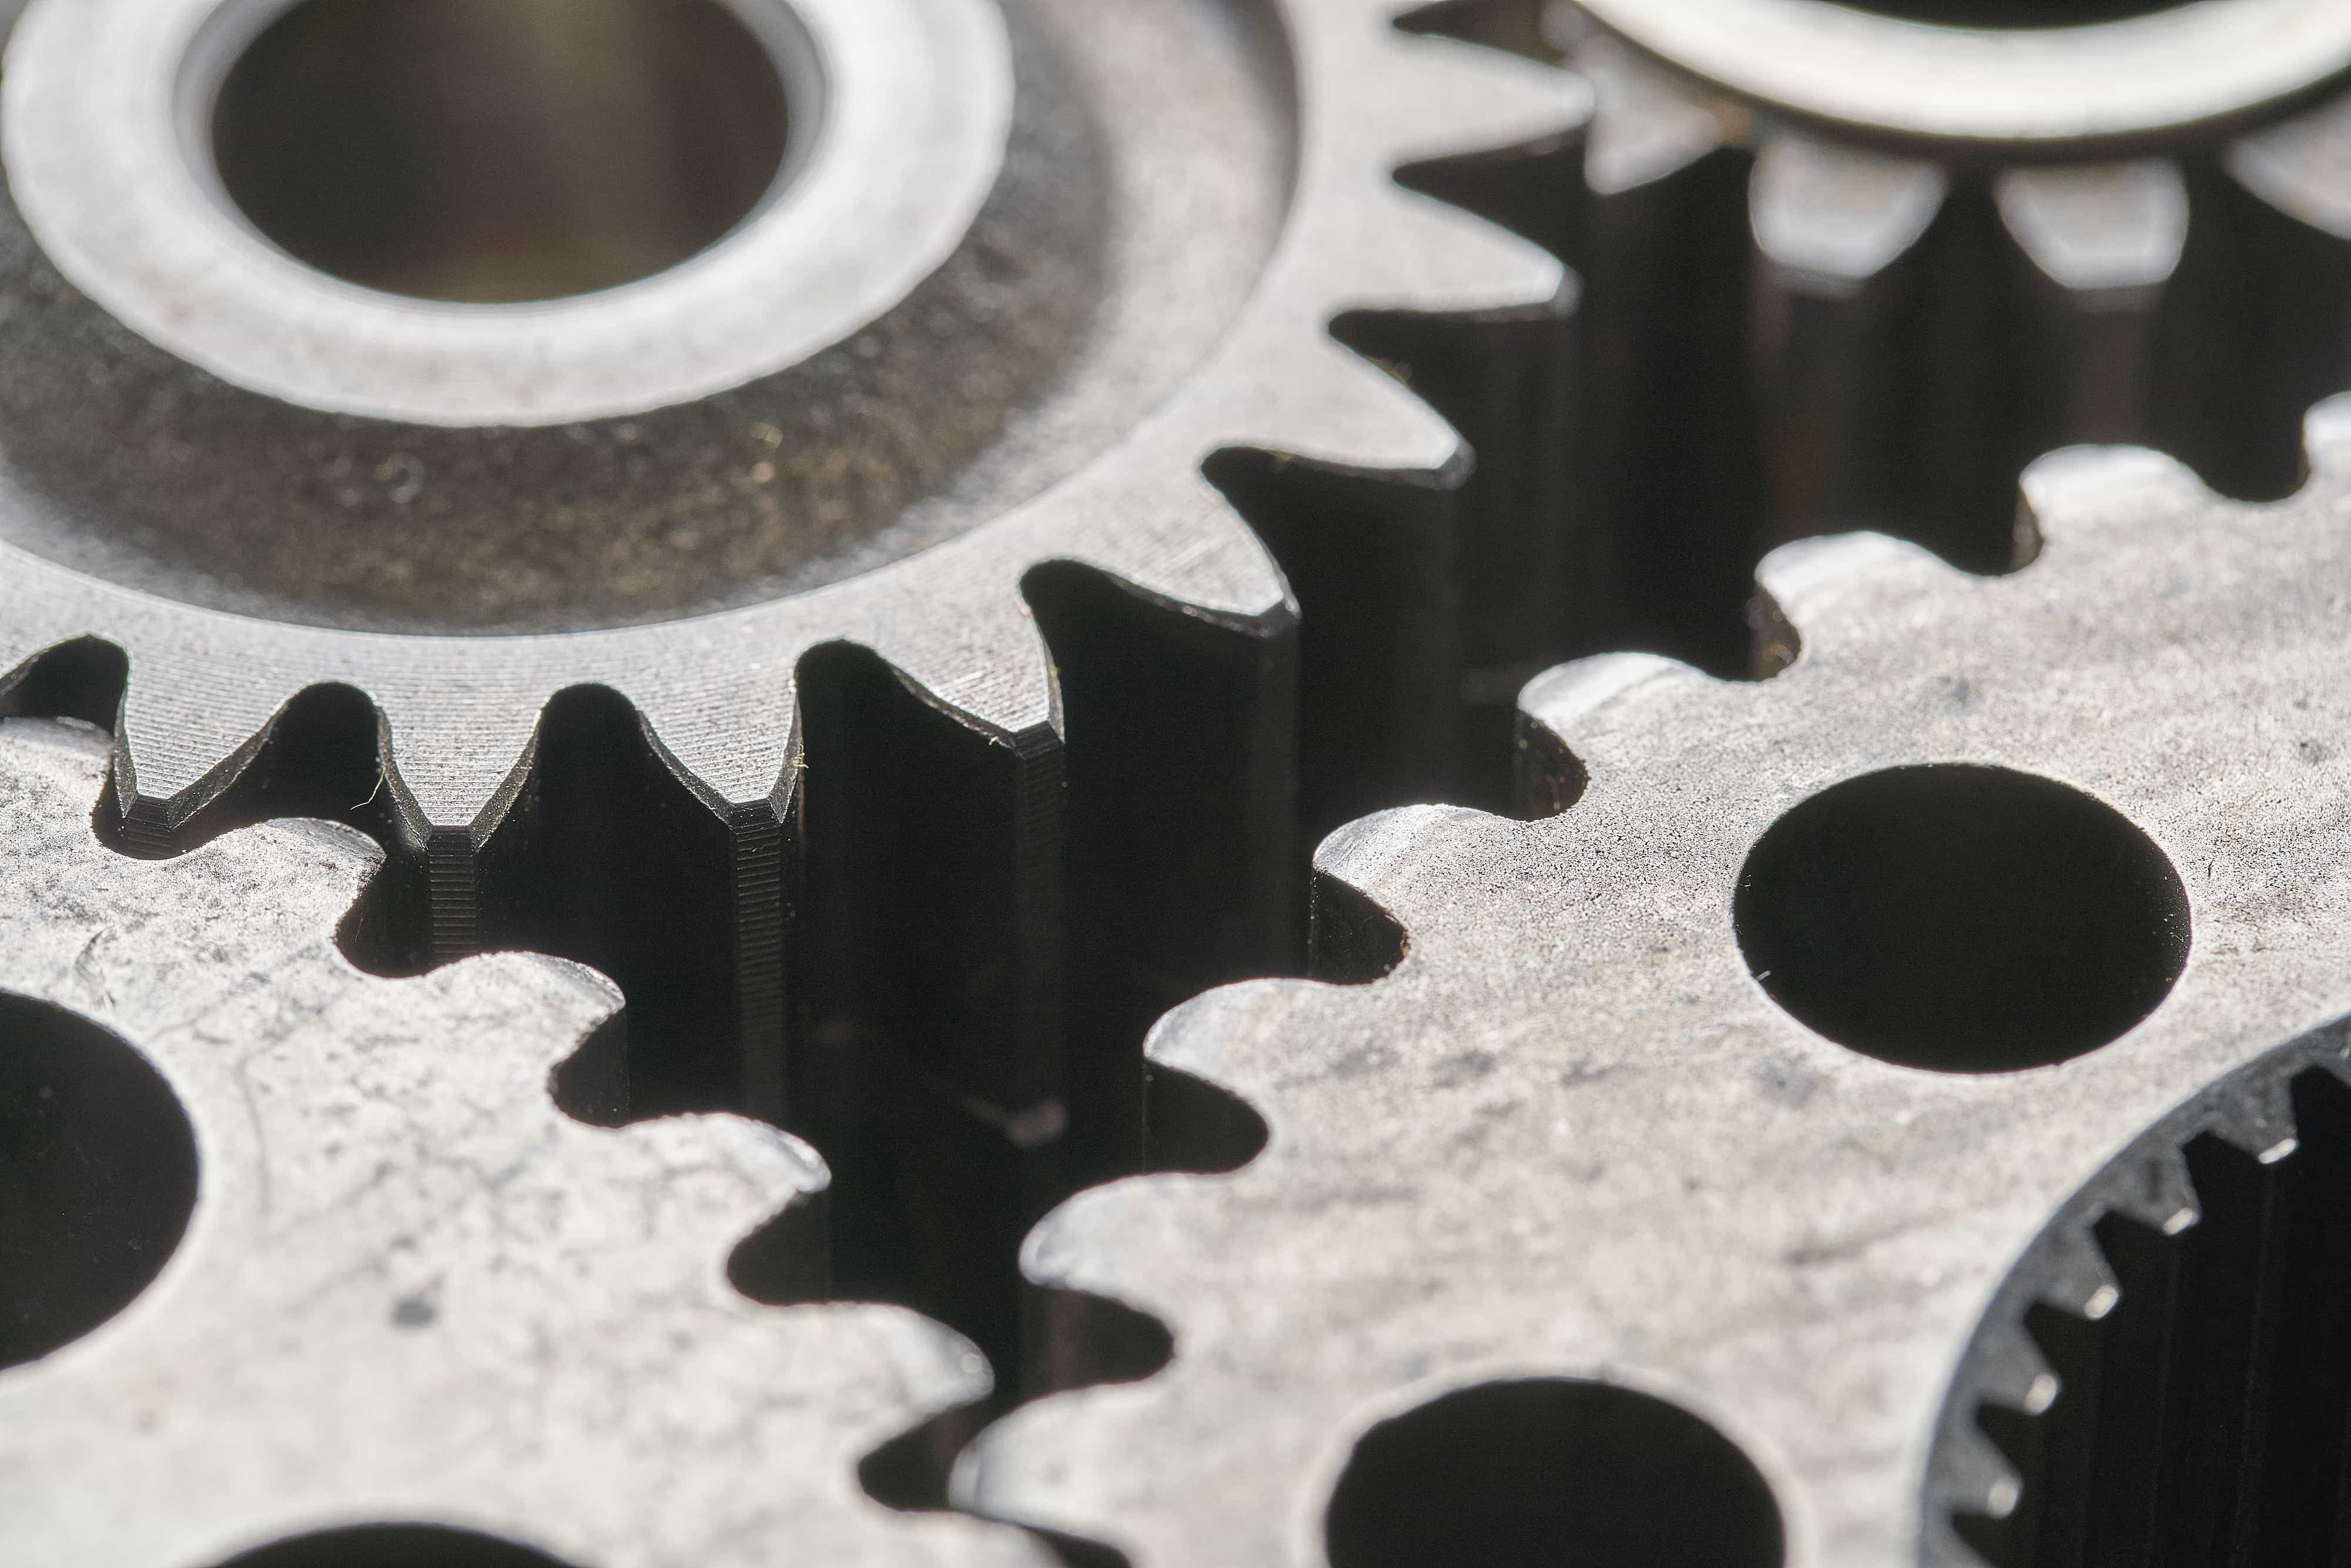 closeup image of gears